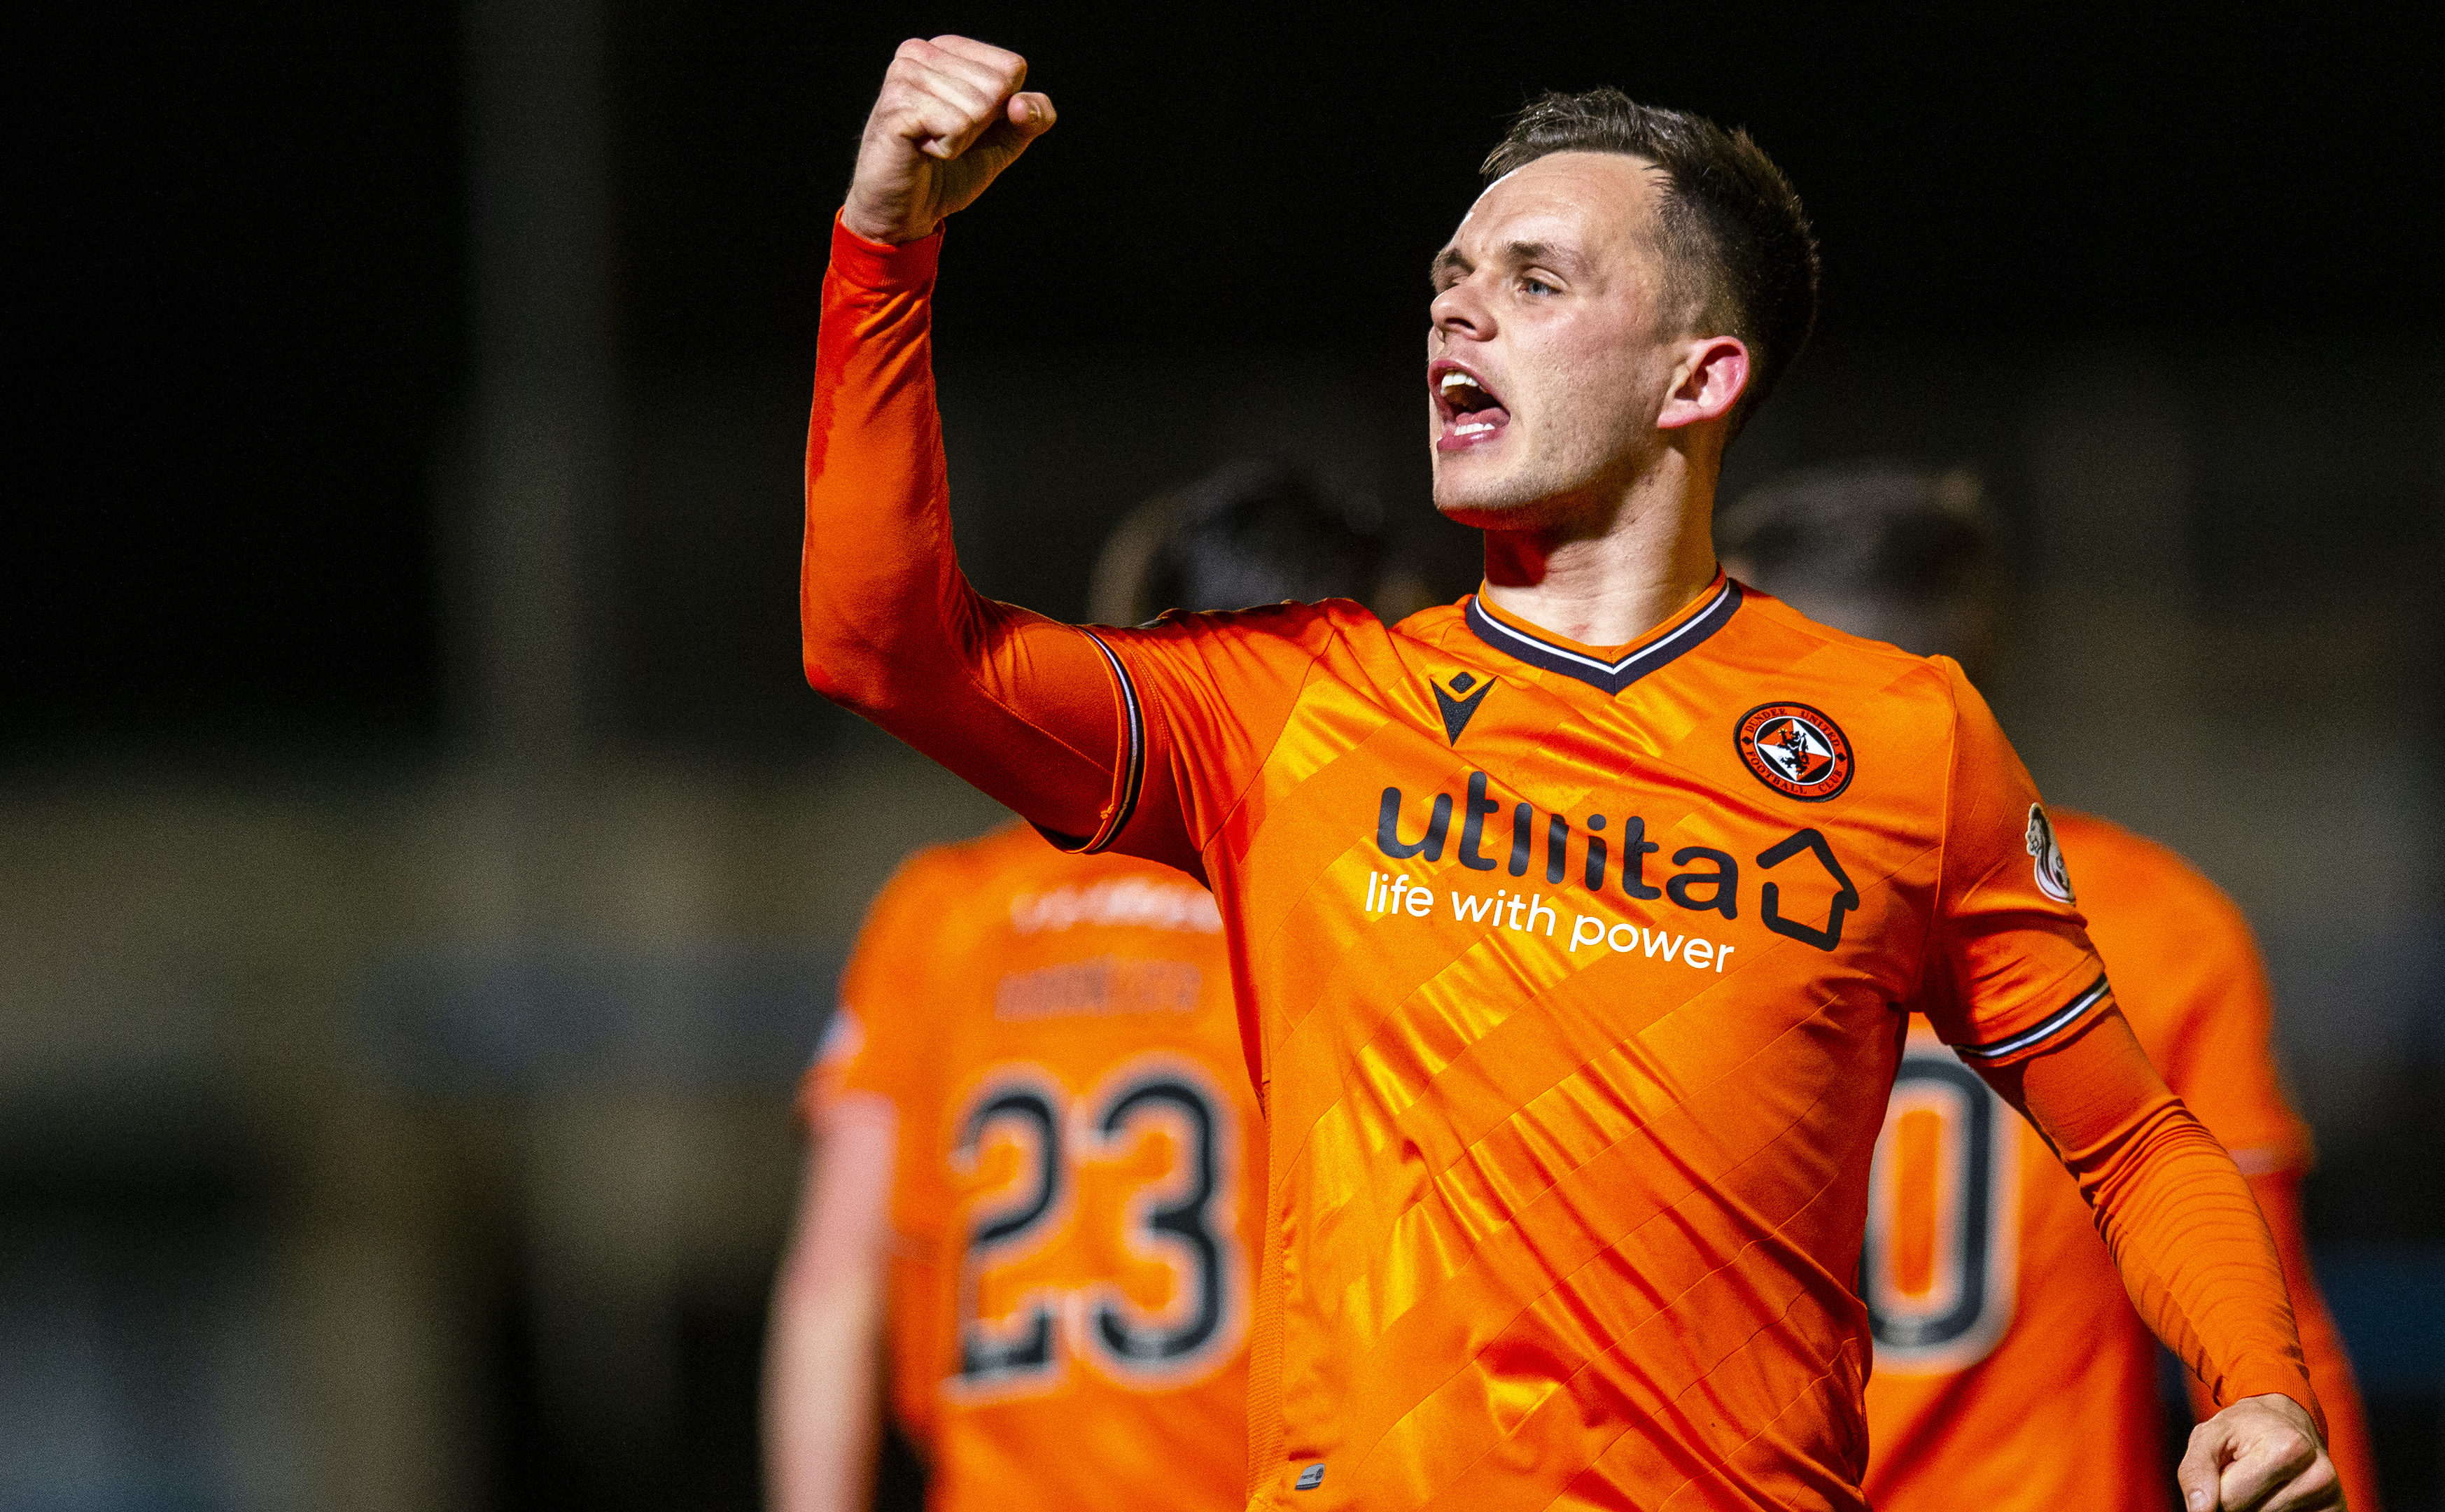 Shankland is desperate to get back to goal-scoring form of 2019/20.